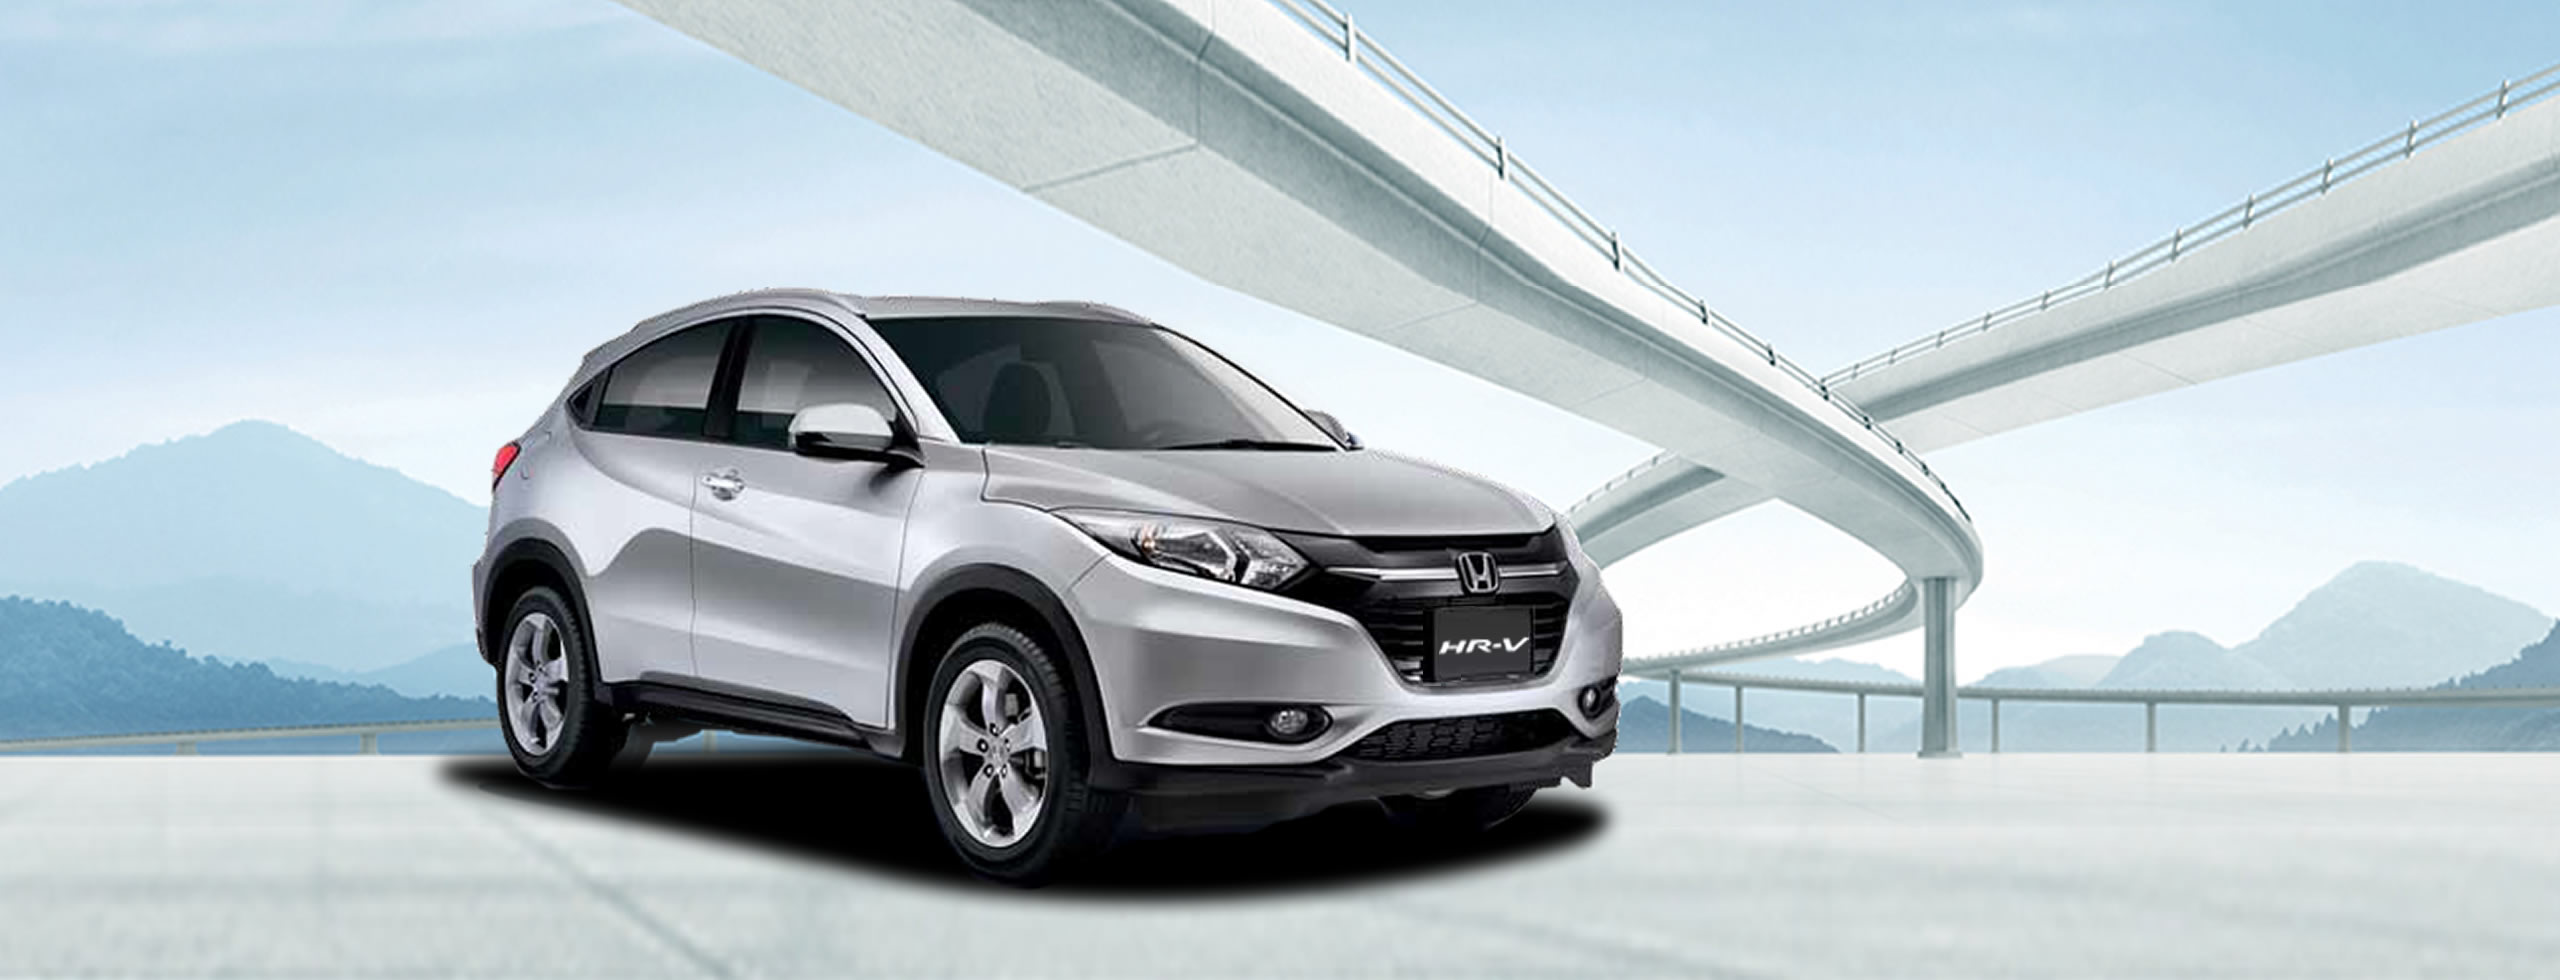 Honda HR-V - Honda Website in Brunei Darussalam